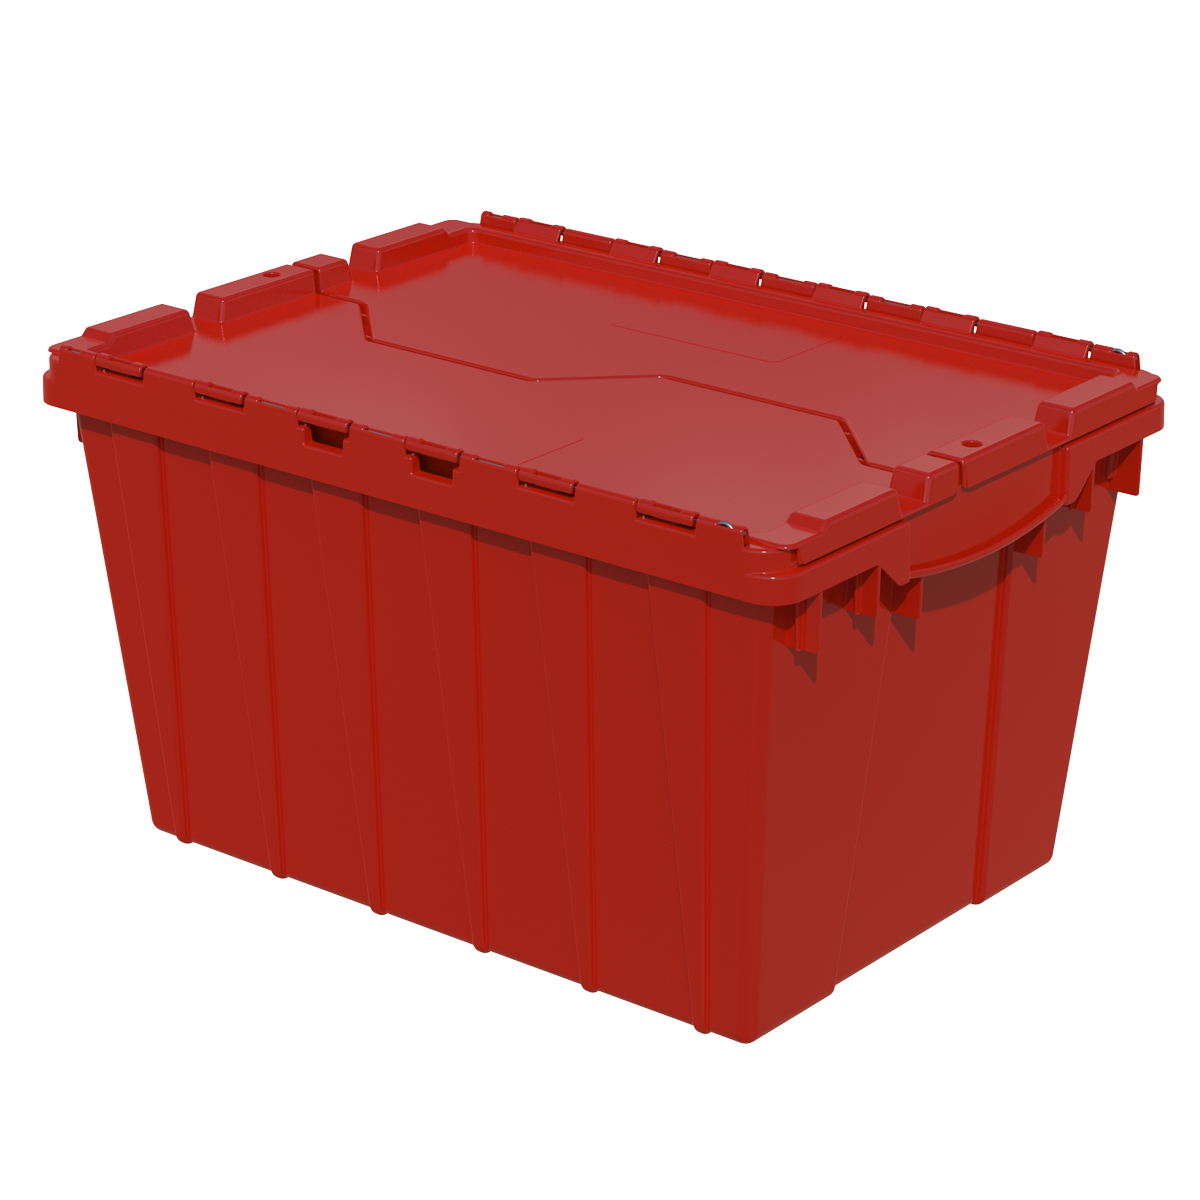 Attached Lid Container 12 gal, 21-1/2 x 15 x 12-1/2, Red (39120RED).  This item sold in carton quantities of 6.